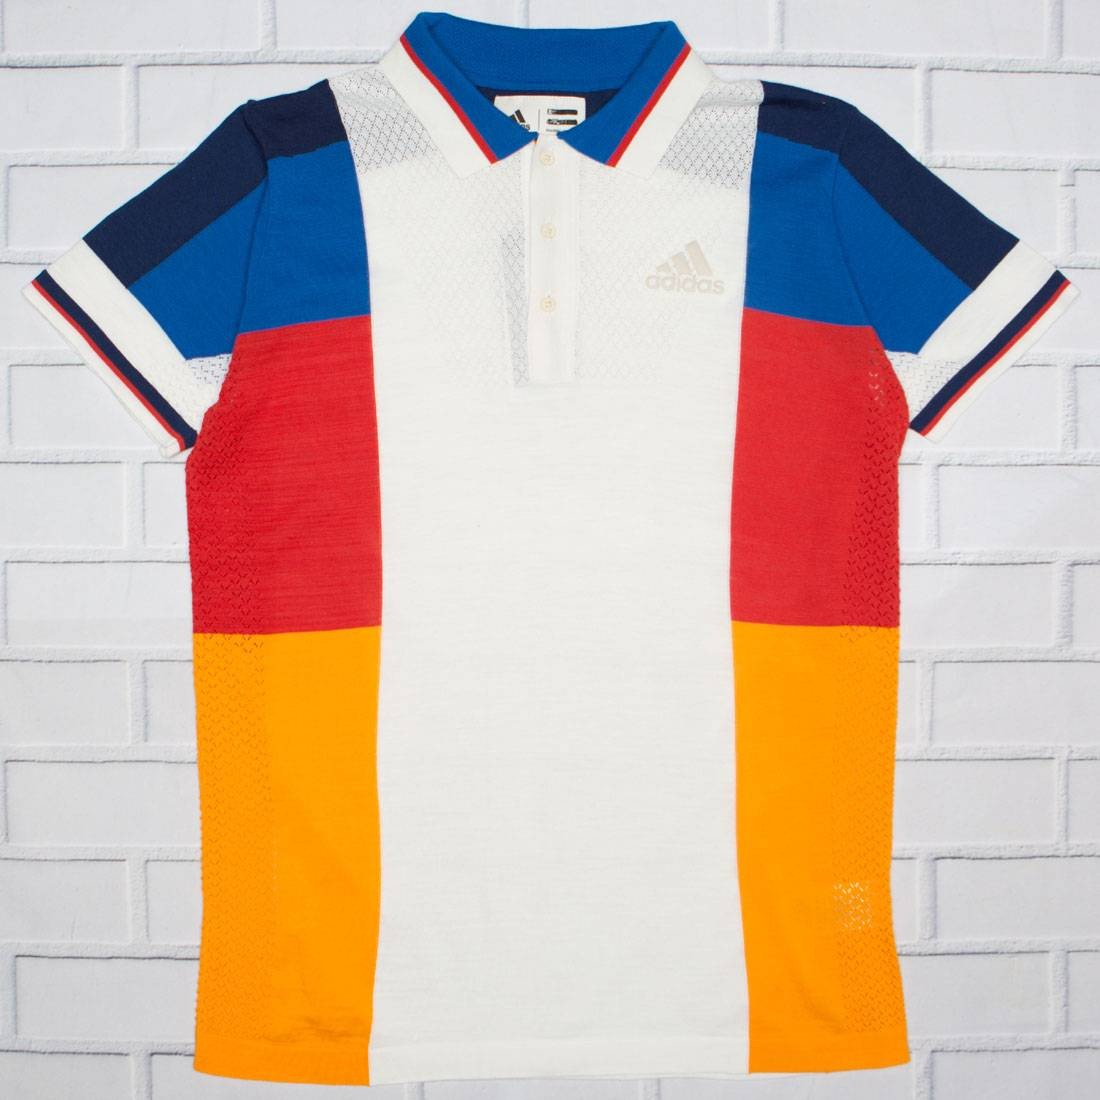 81eabcdb6 Adidas x Pharrell Williams Men NY Colorblock Polo Shirt white chalk white  clear brown blue